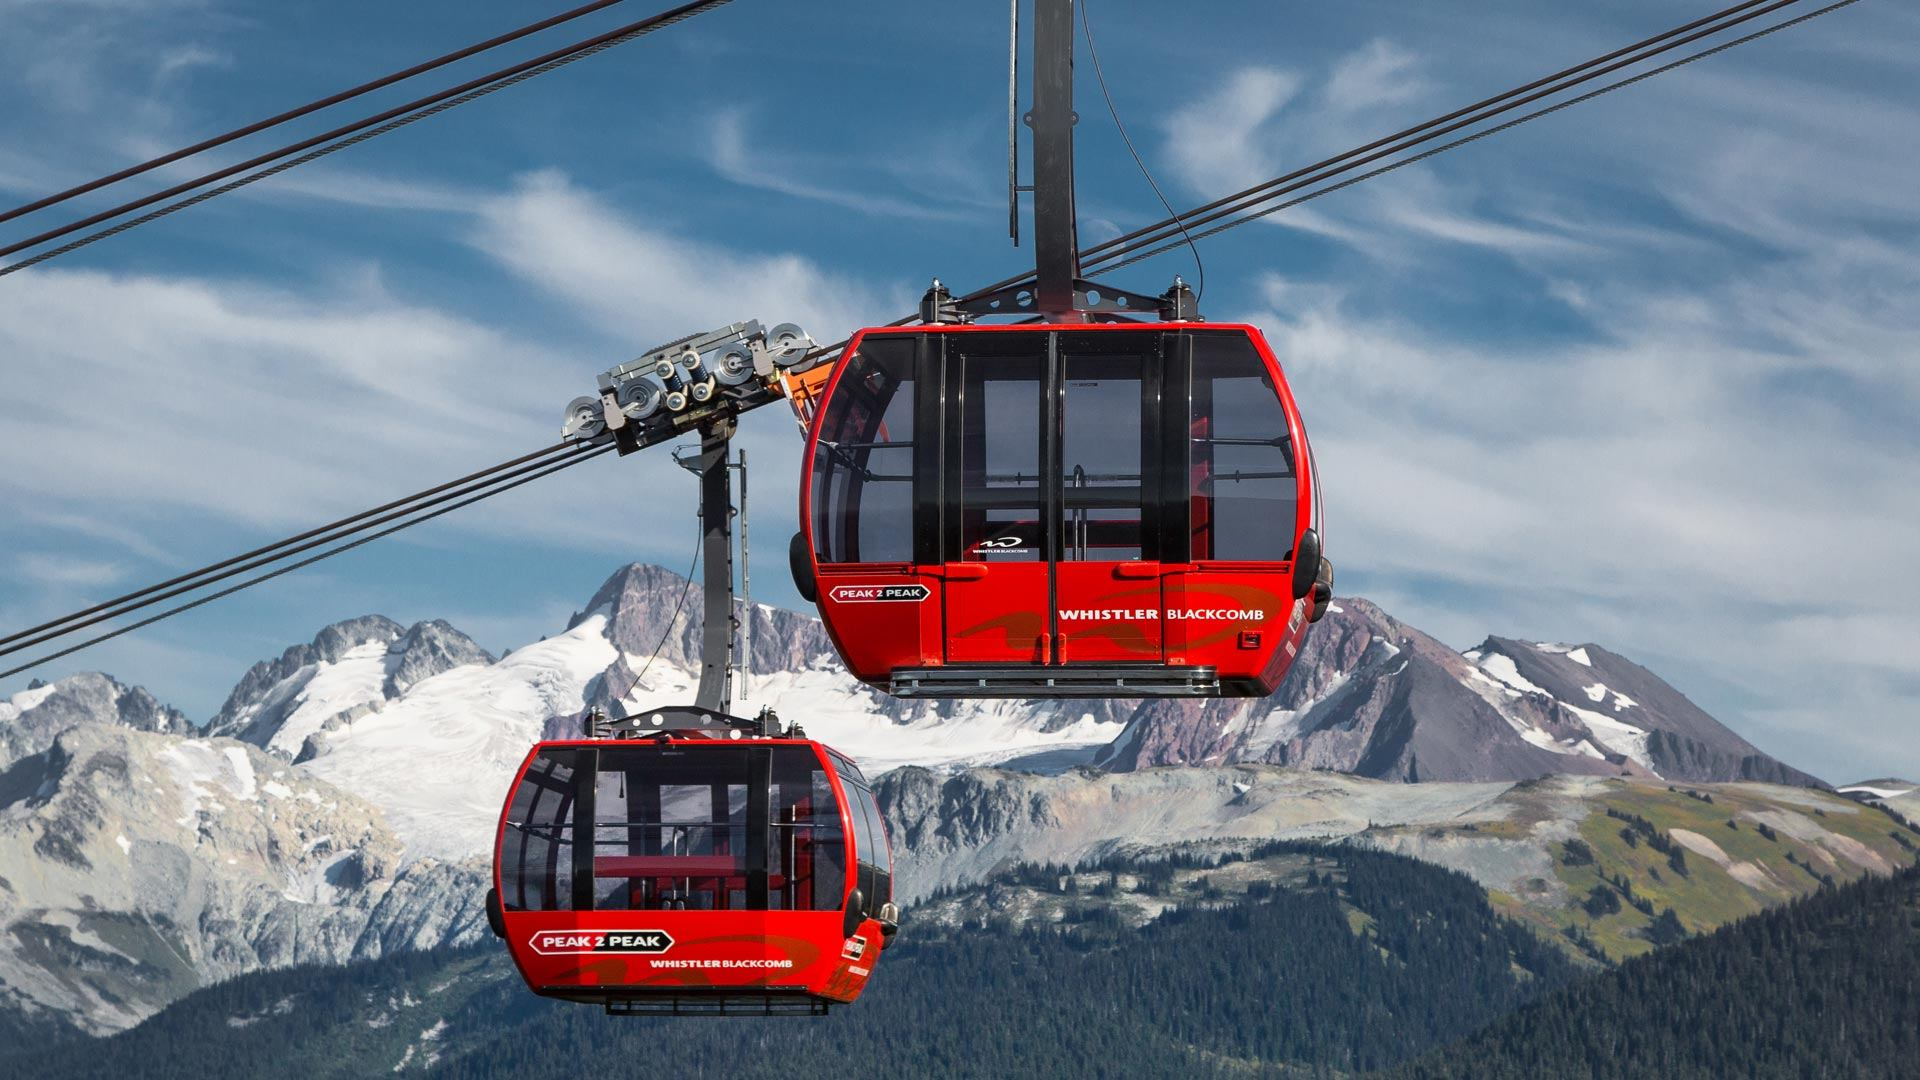 25 things to do at the top of Whistler Blackcomb this summer